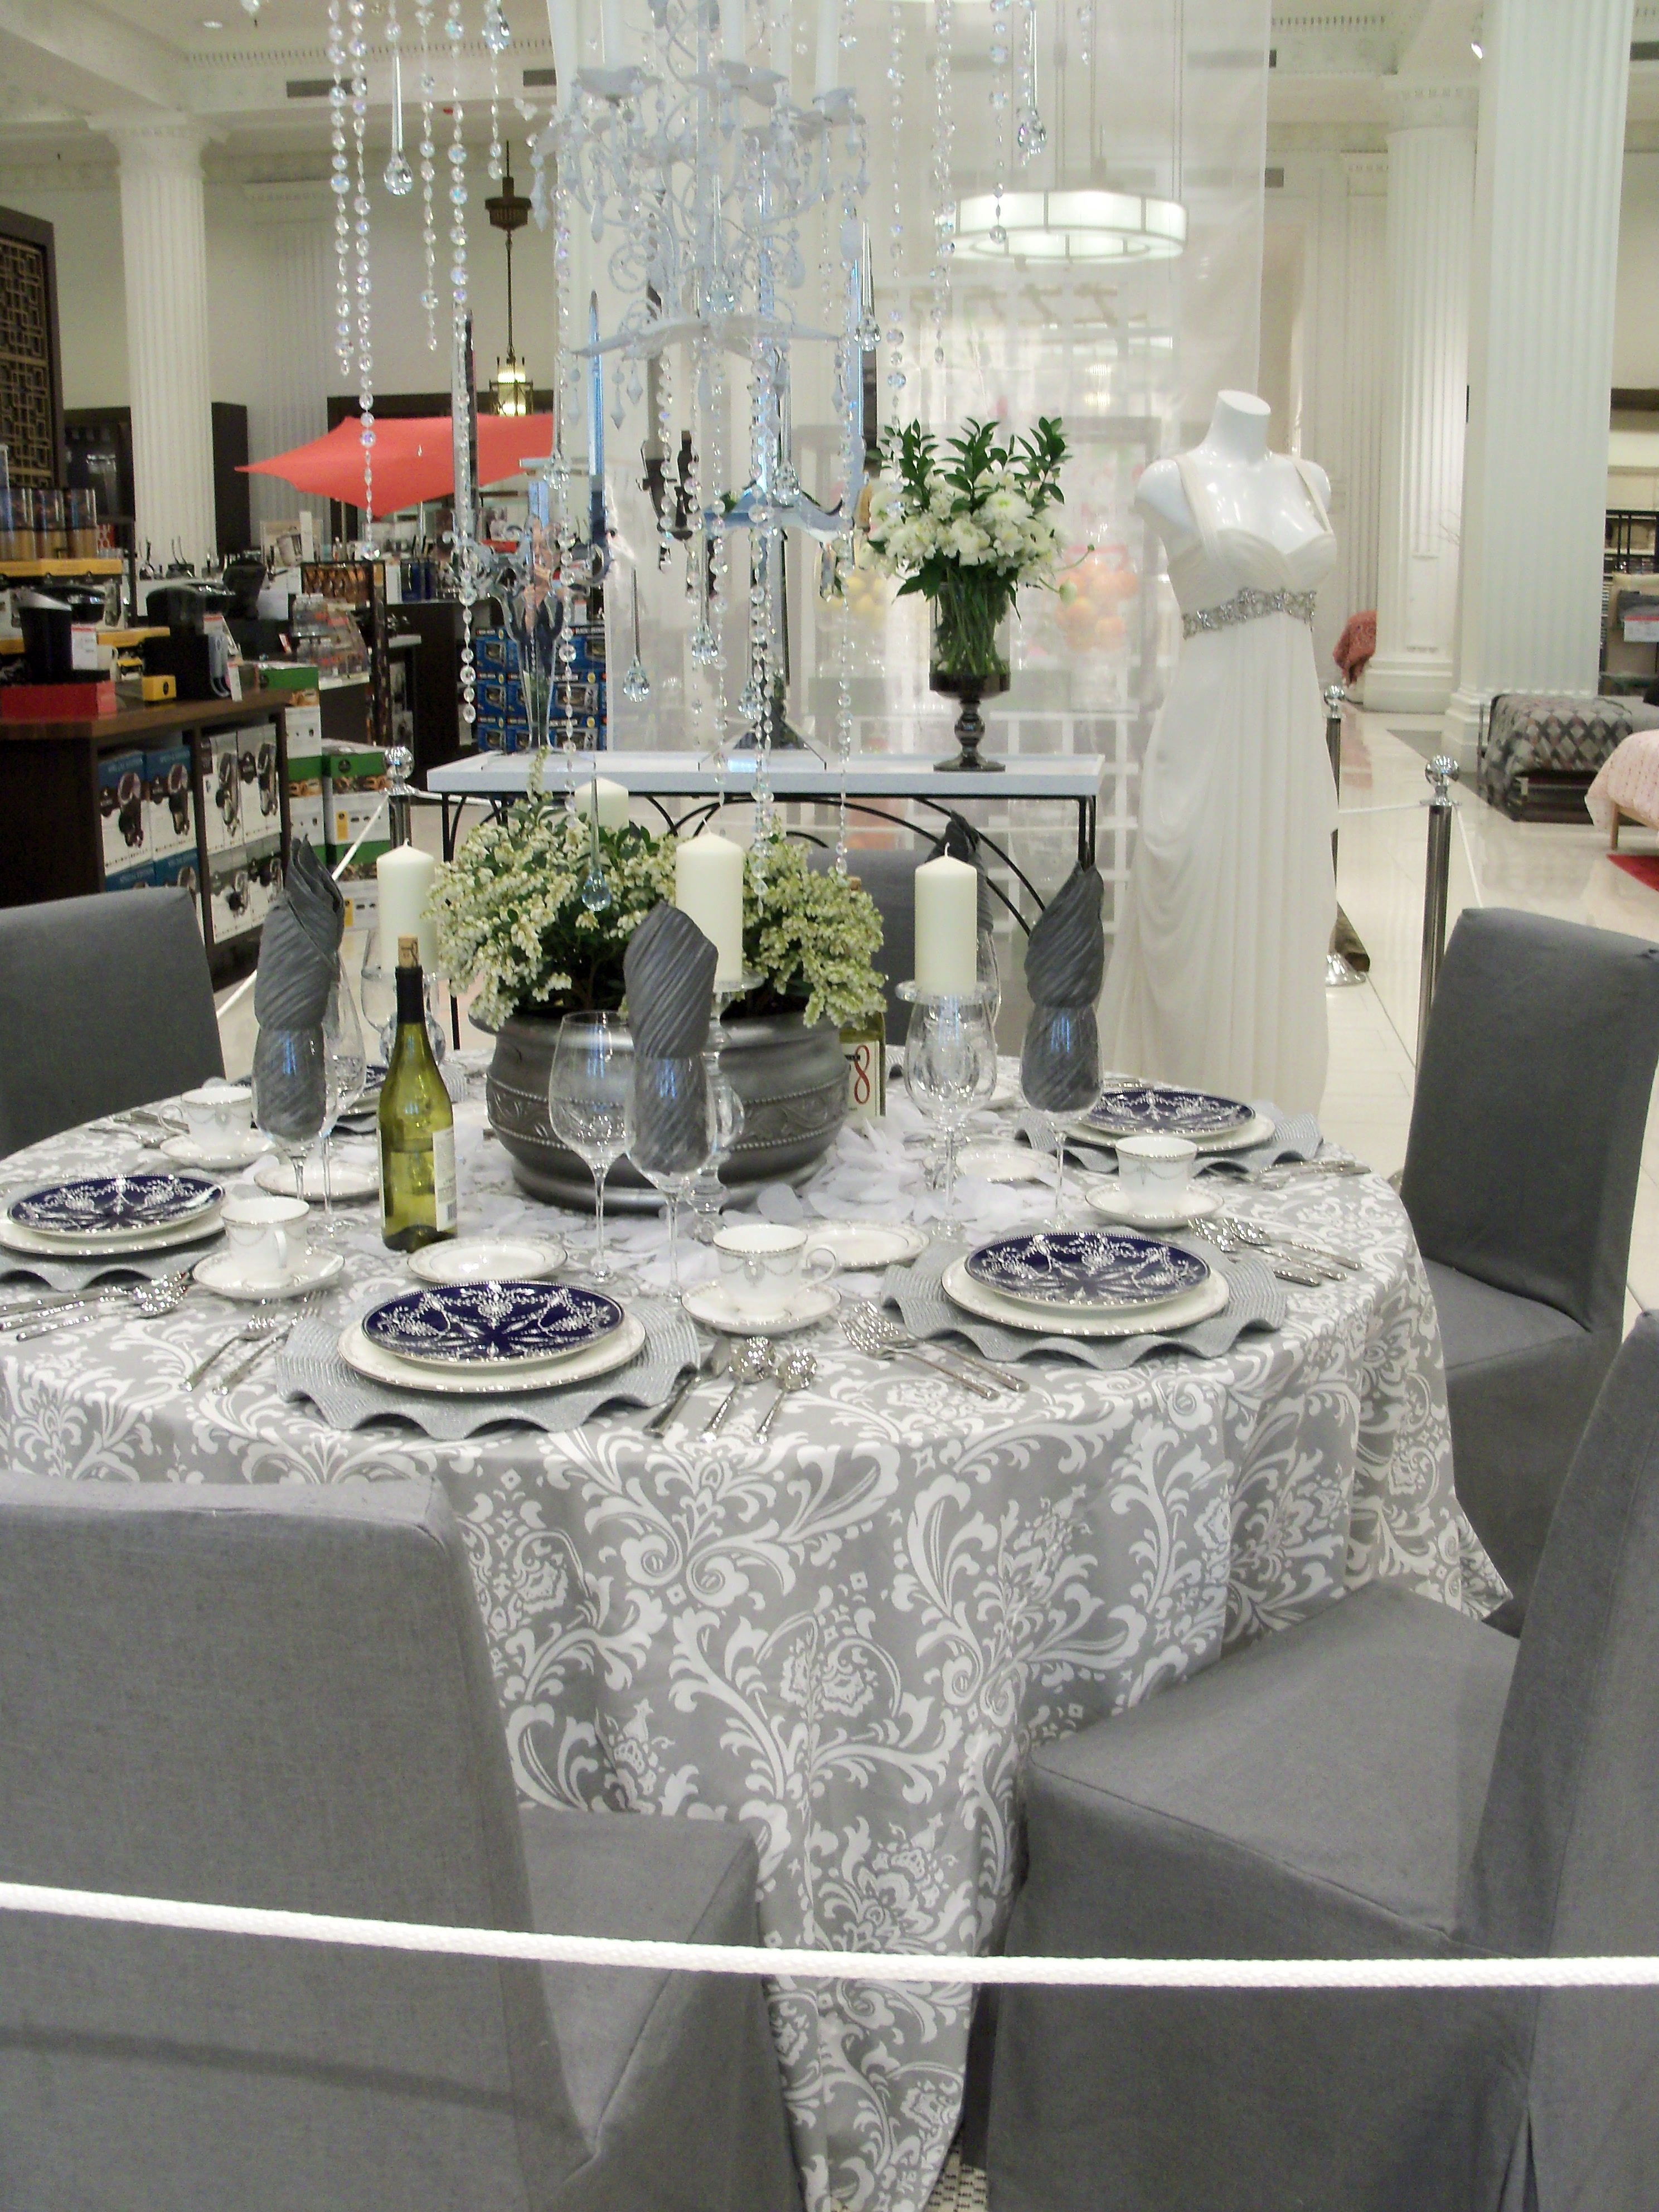 Groovy Macys Flower Show Featuring Marchesa By Lenox Empire Pearl Beatyapartments Chair Design Images Beatyapartmentscom